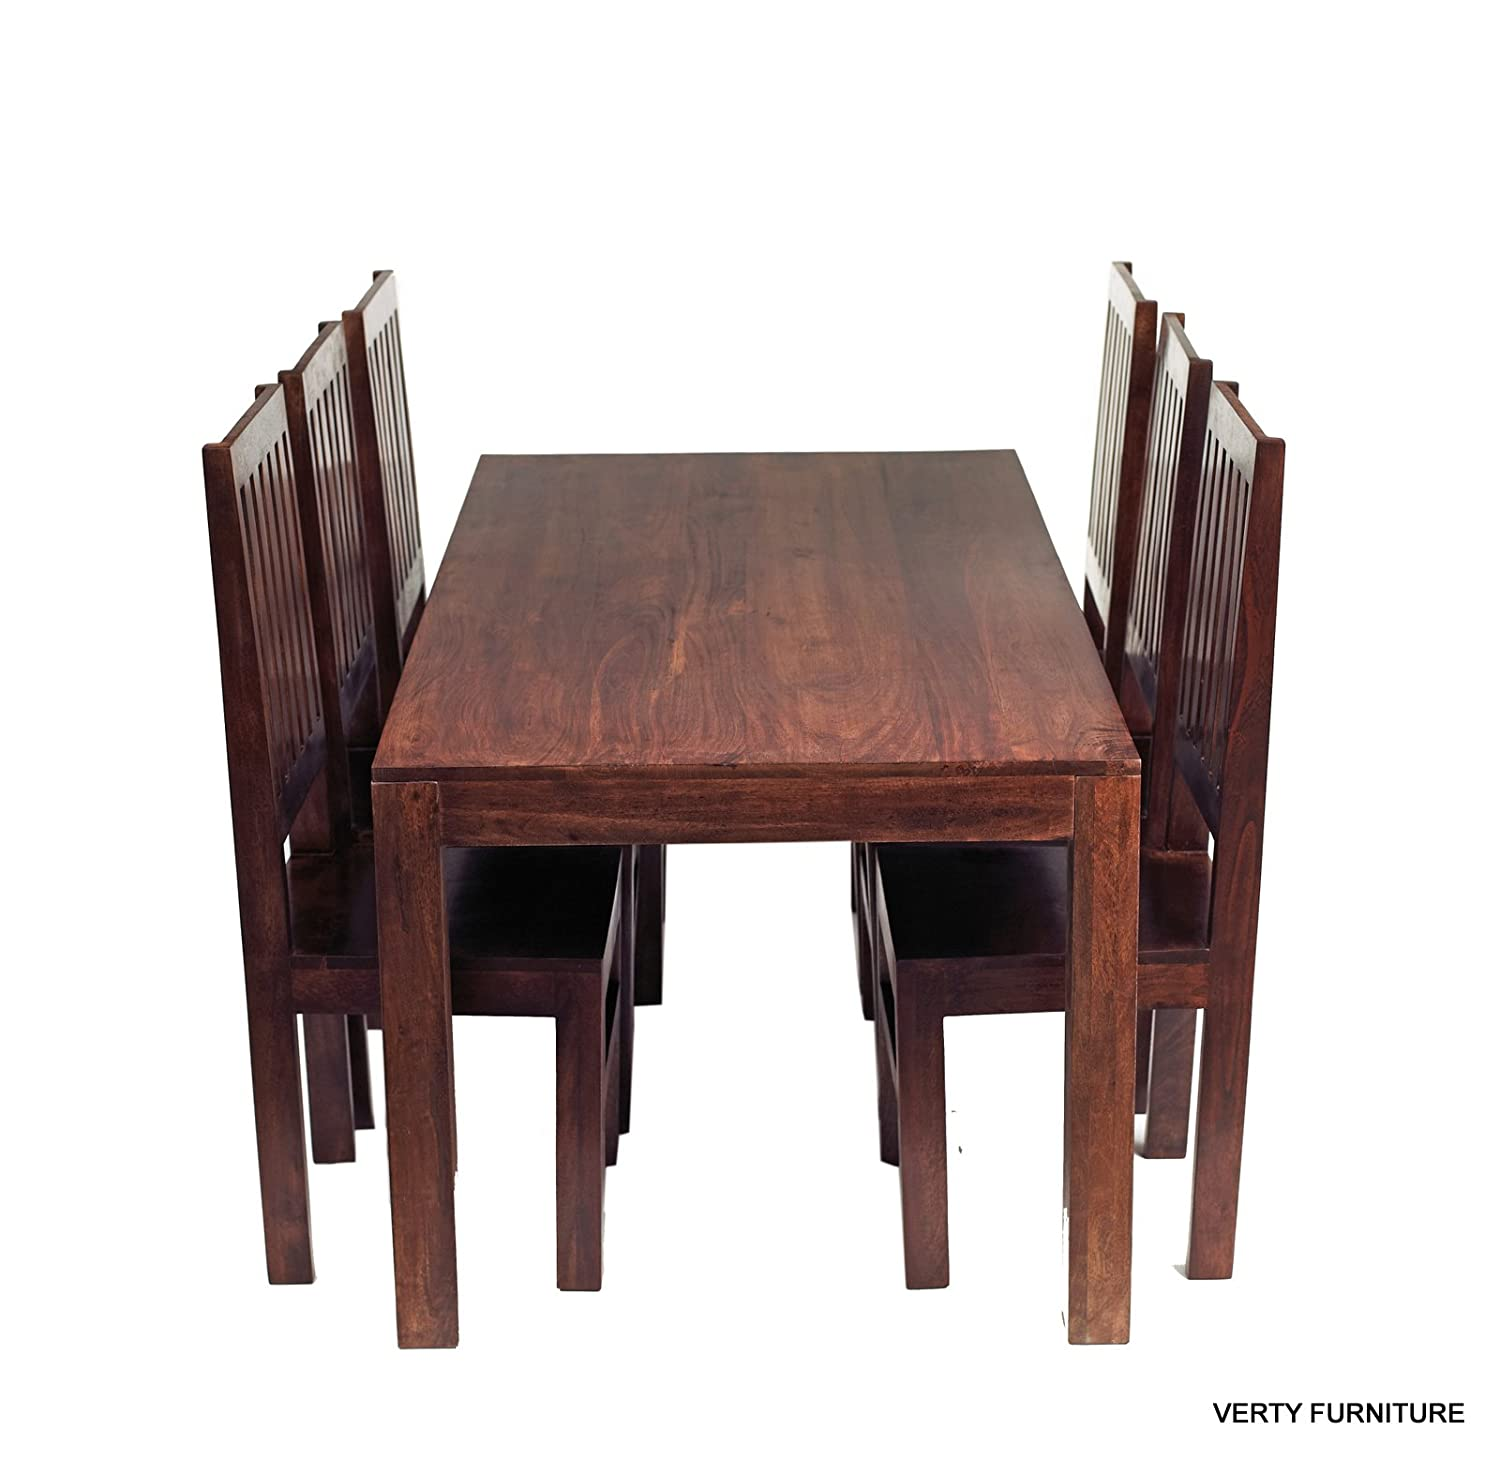 Solid Mango Dakota Dining Table 6ft 1 8m with 6 Wooden Chairs